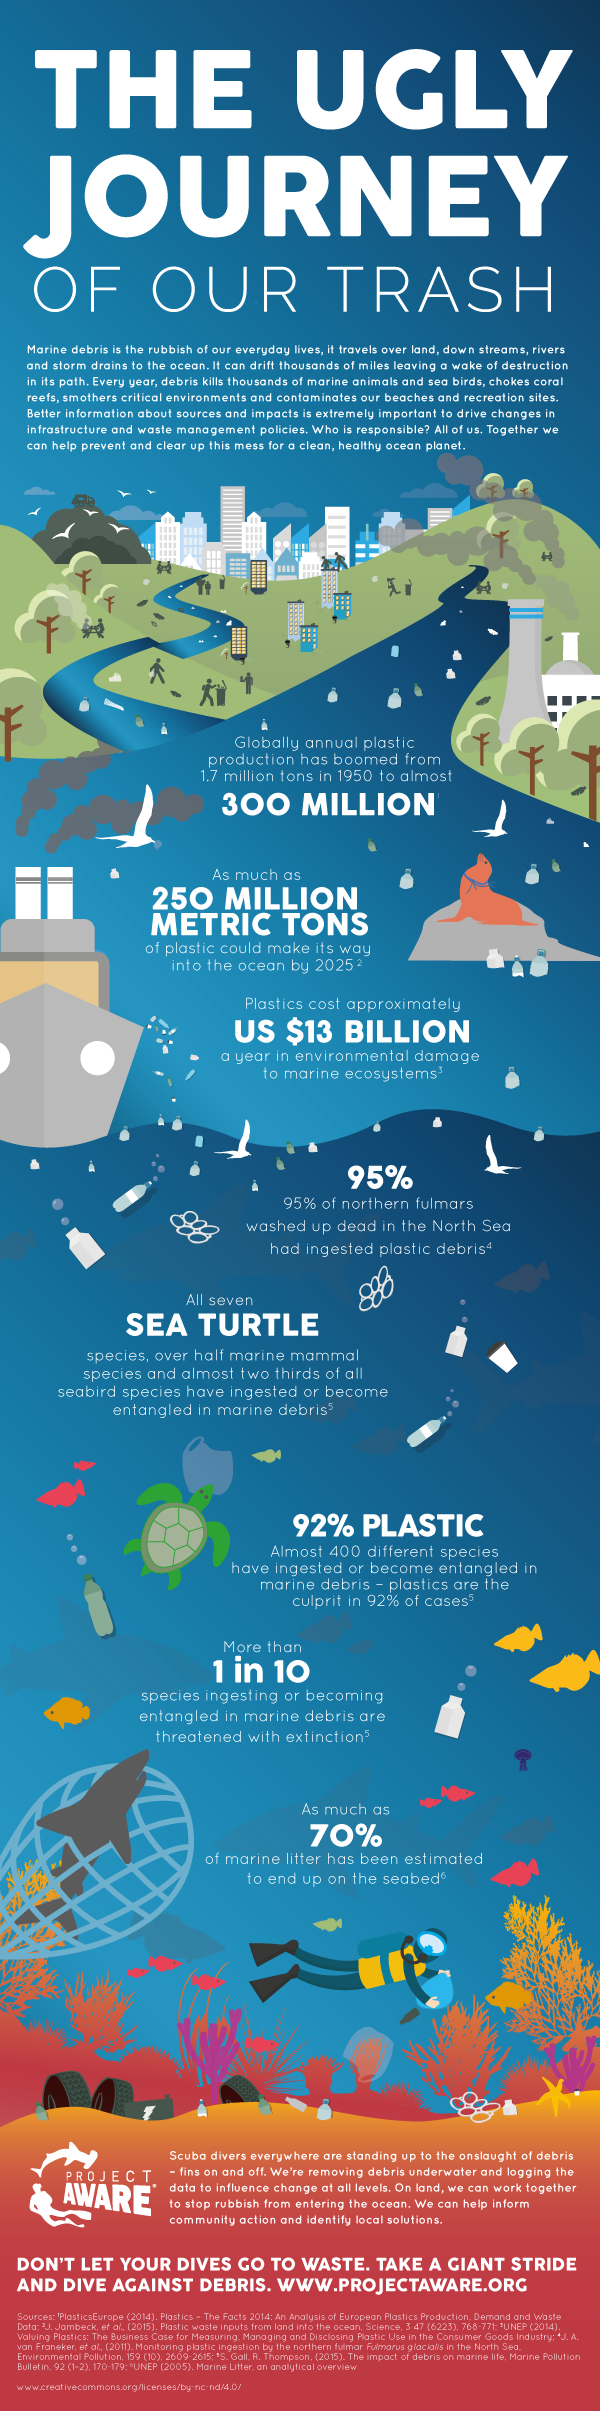 Where Does Your Trash End Up: The Ugly Journey Infographic